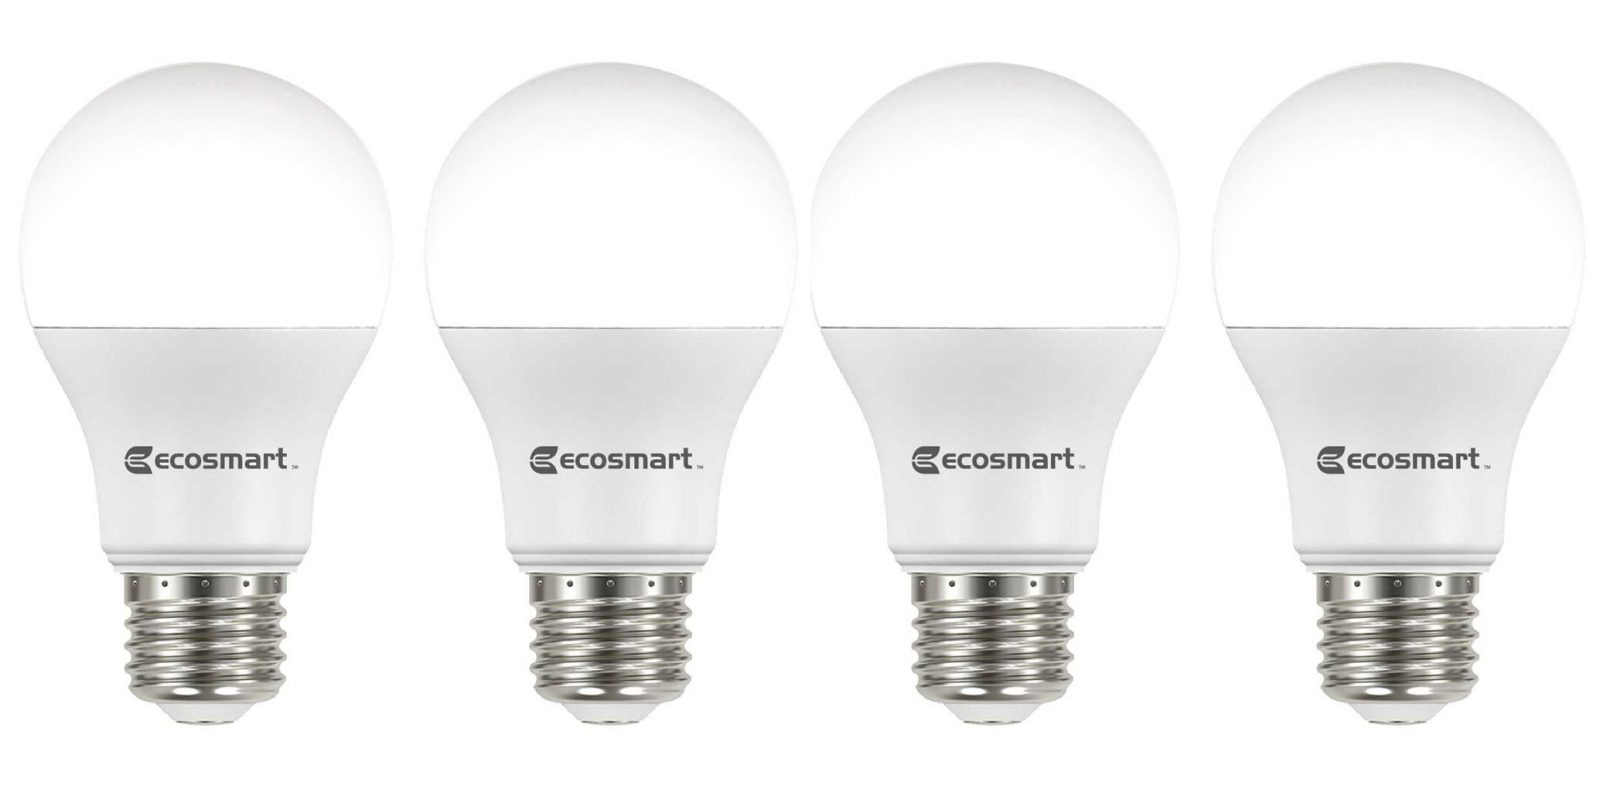 Green Deals Ecosmart 4 Pack 60w A19 Dimmable Led Light